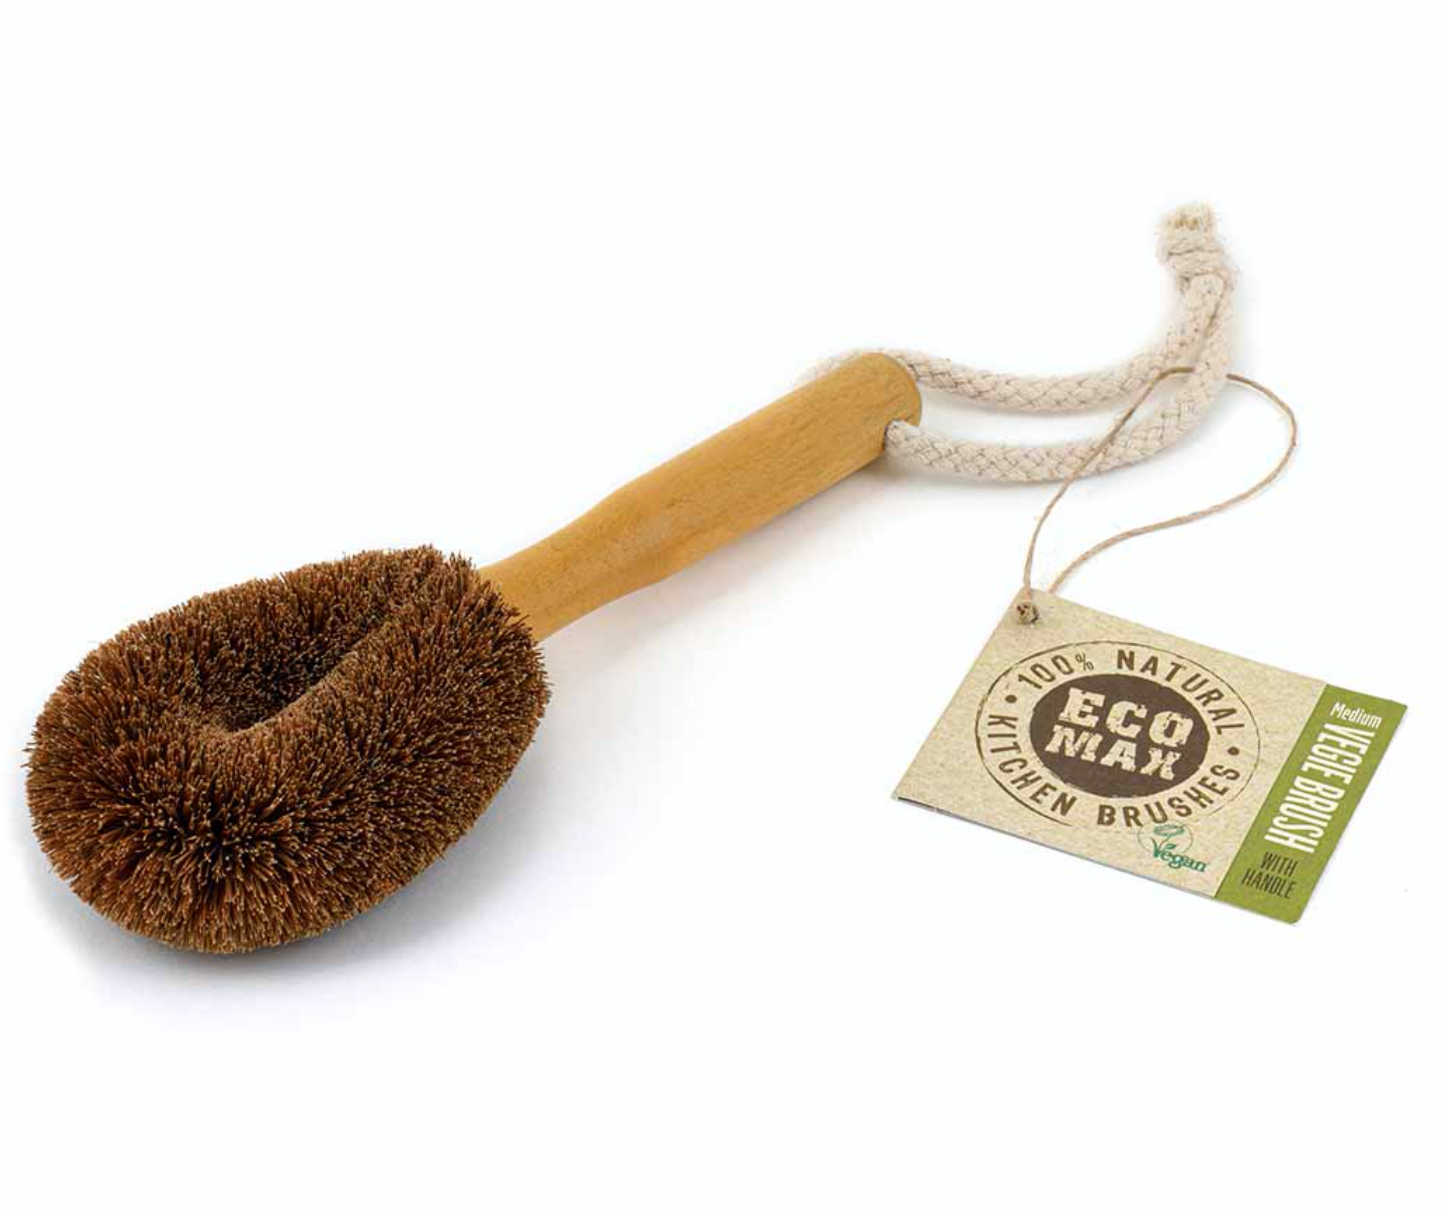 Eco Max Vege Brush with Handle - Medium